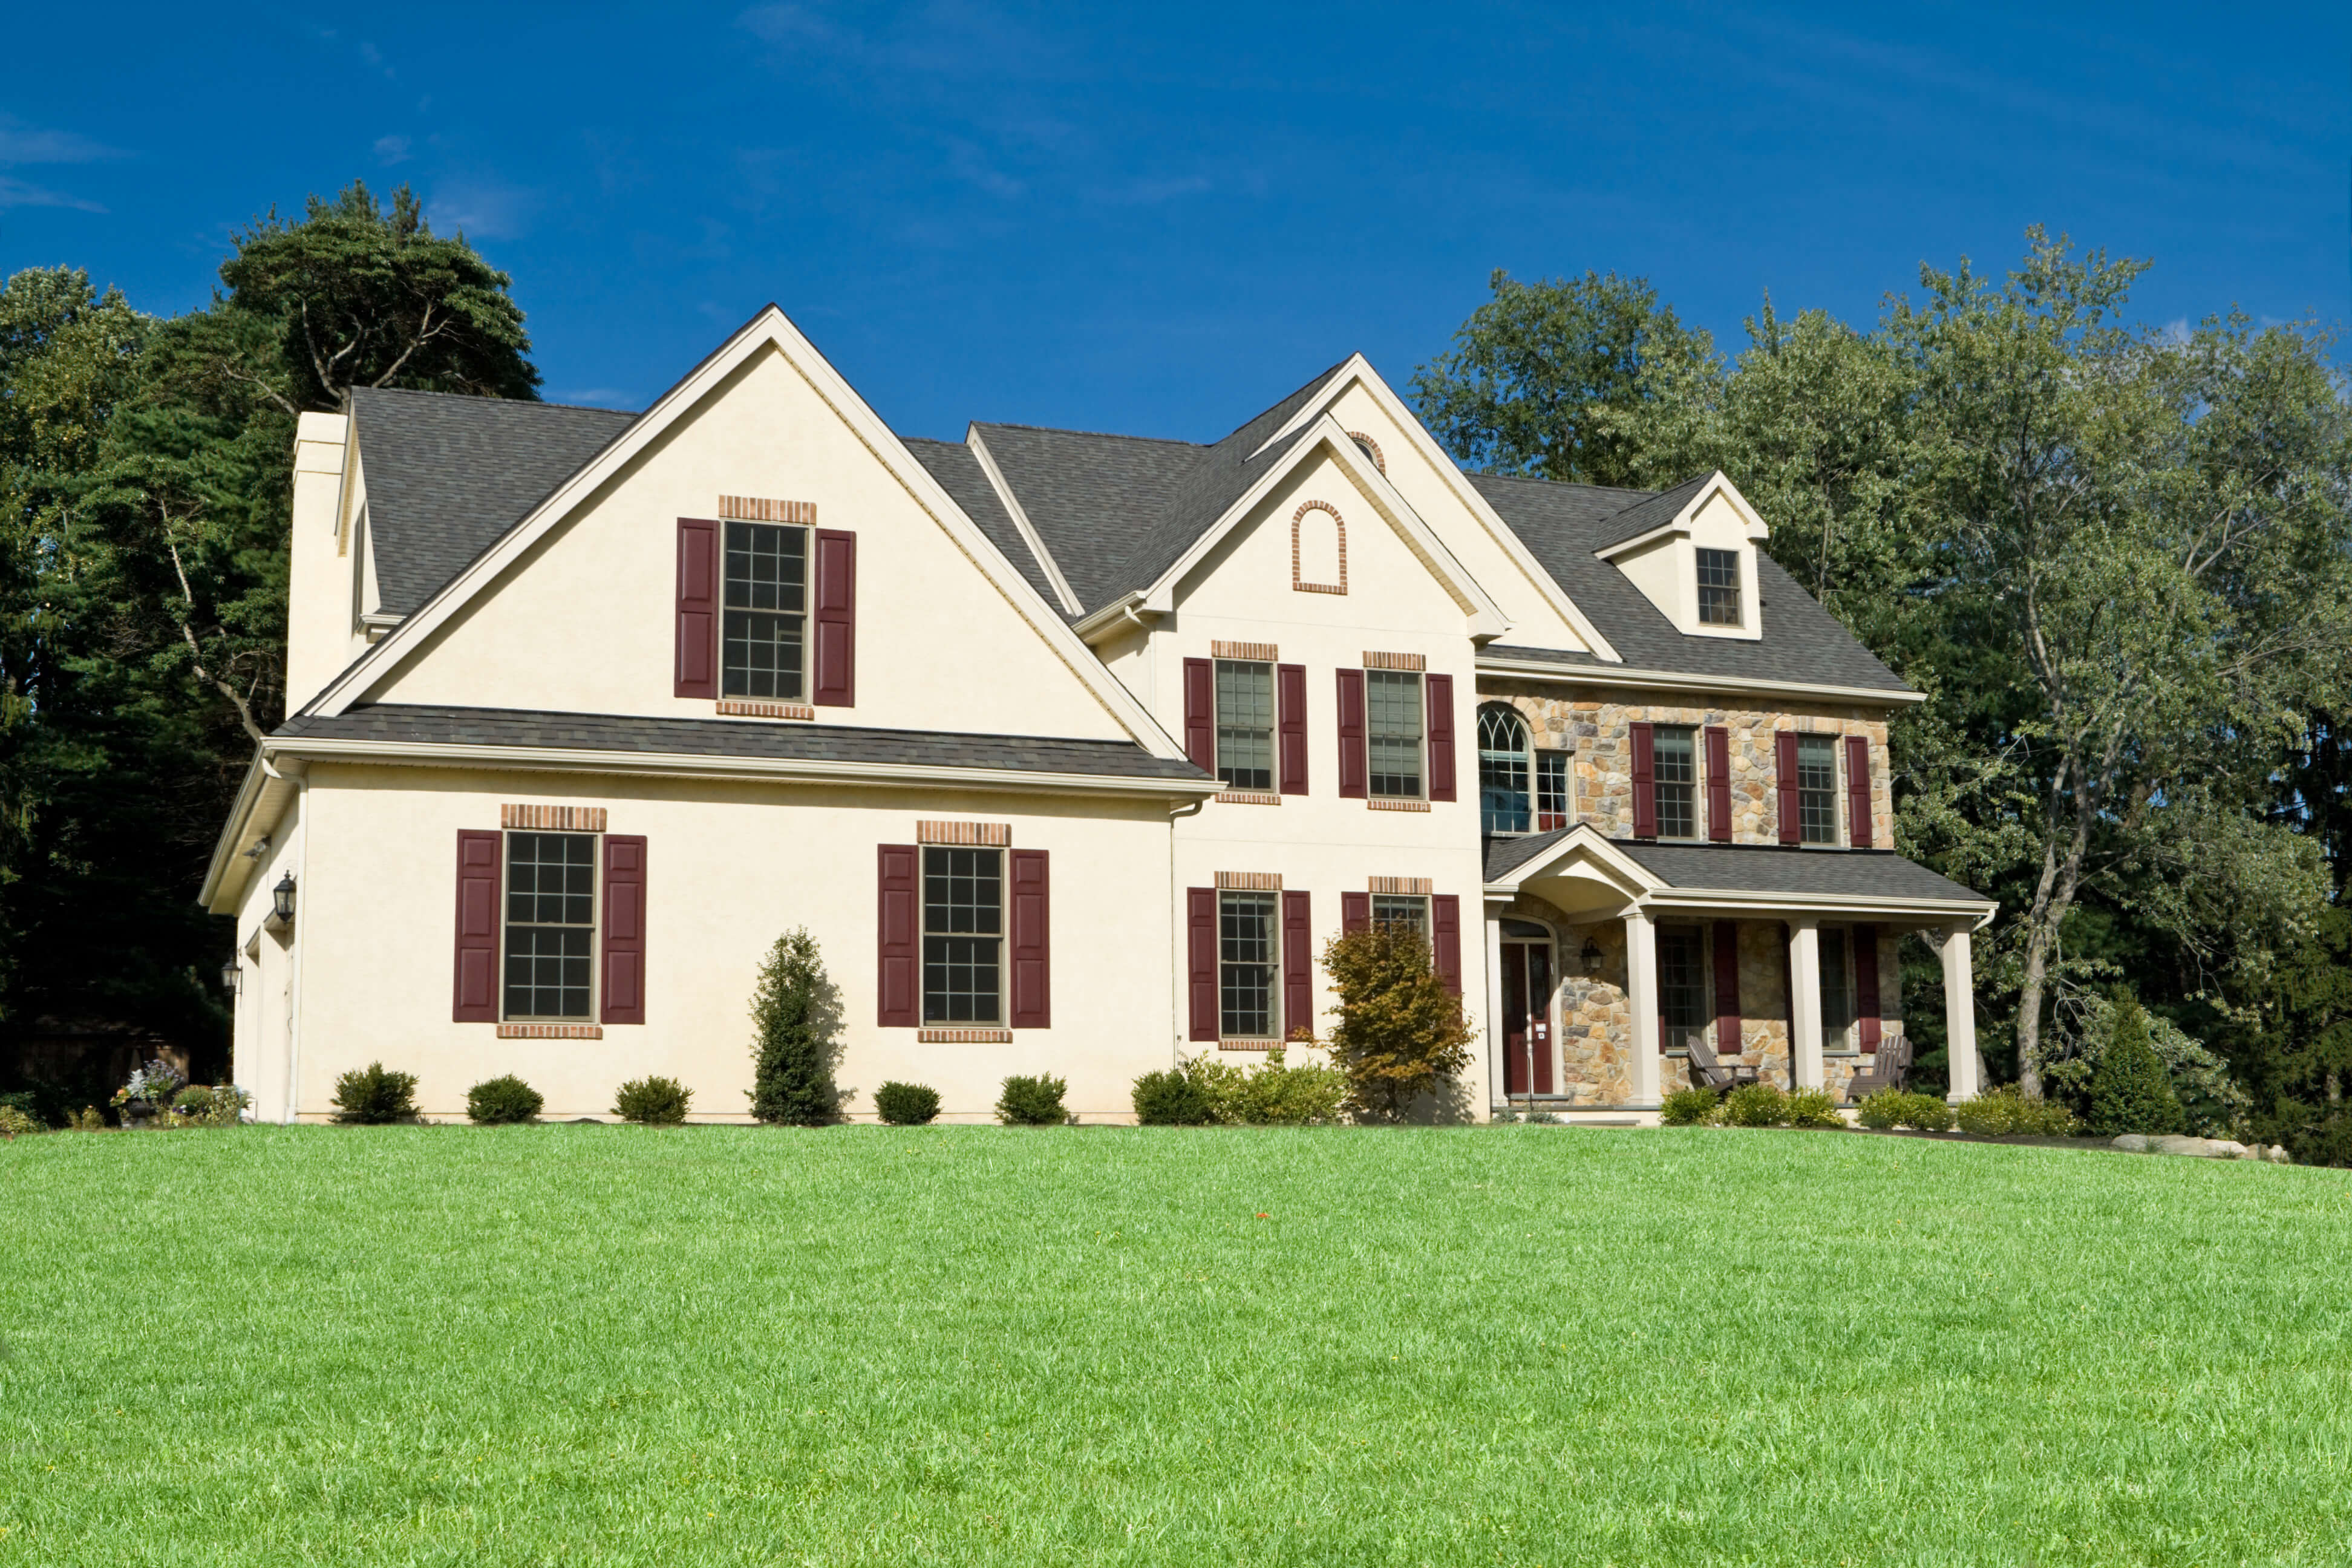 Home and building insurance value